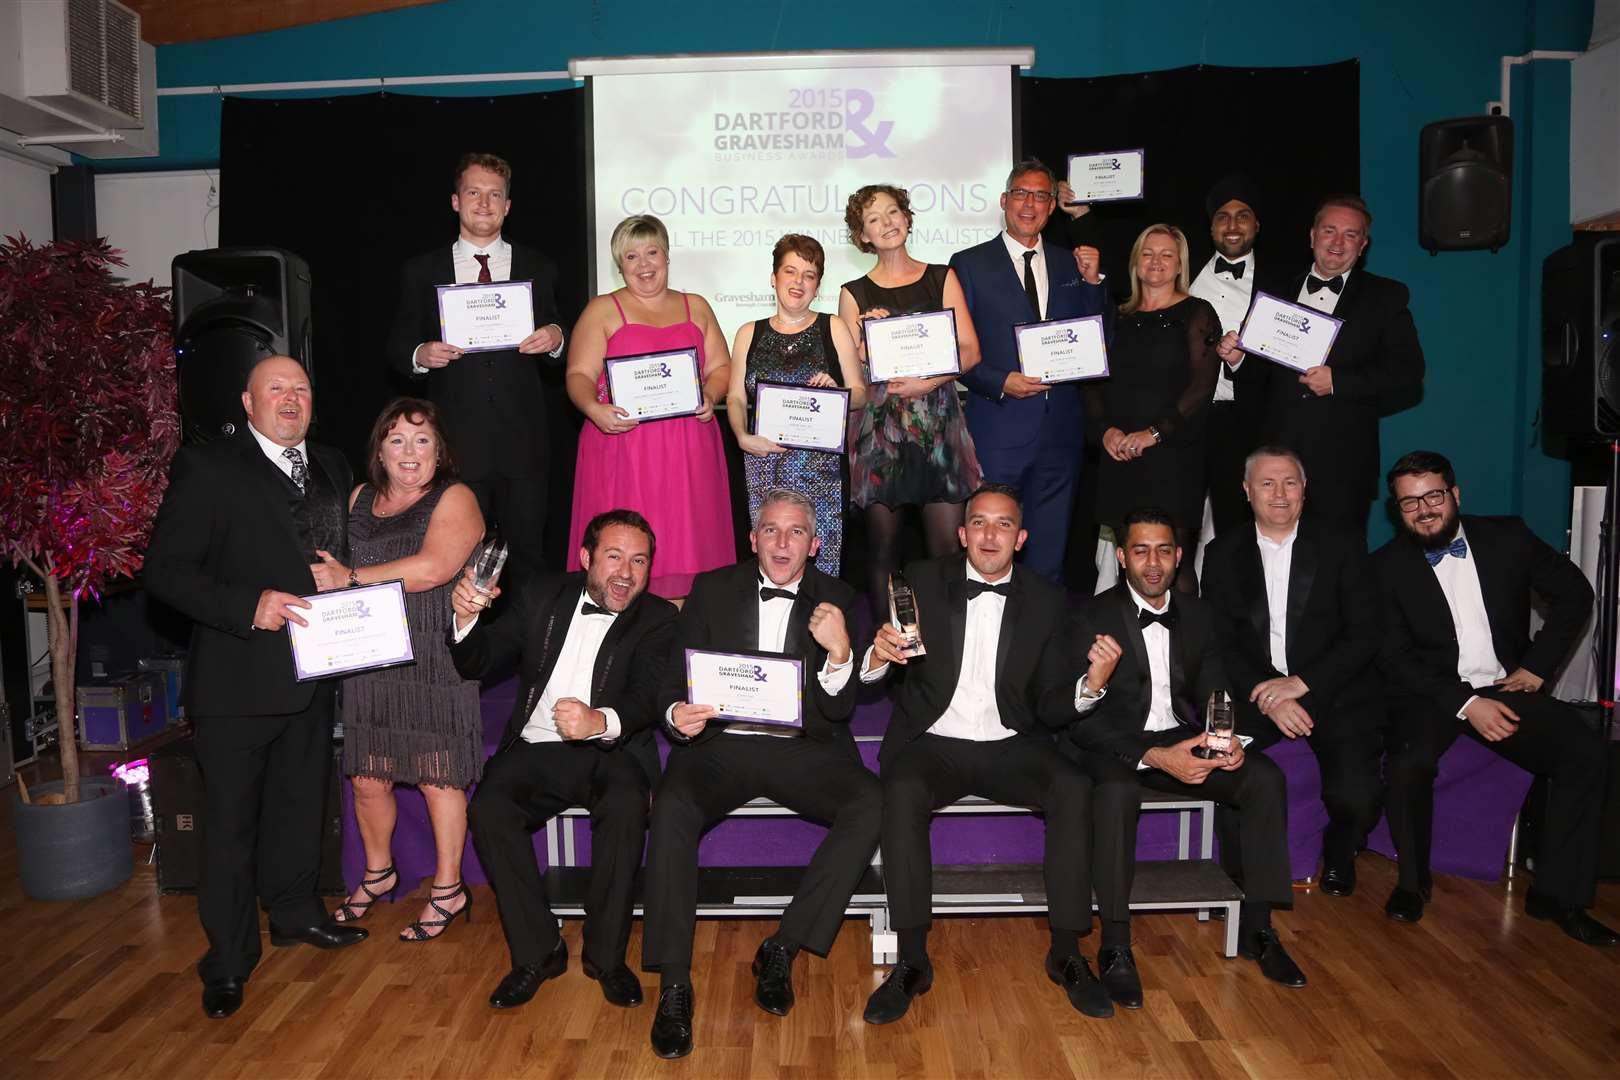 The winners and finalists at the Dartford and Gravesham Business Awards